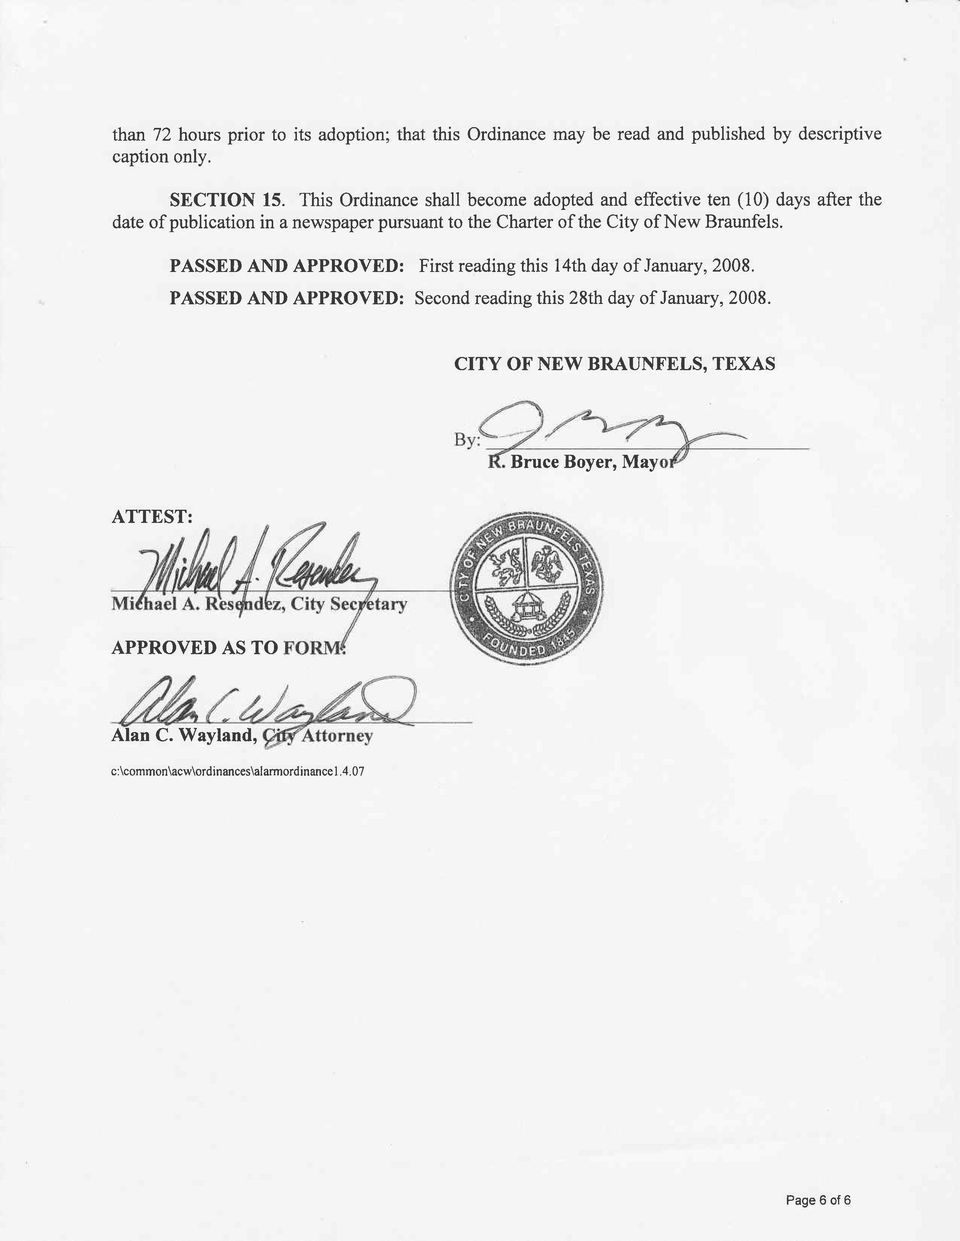 City of New Braunfels. PASSED AND APPROVED: First reading this 14th day of January, 2008.